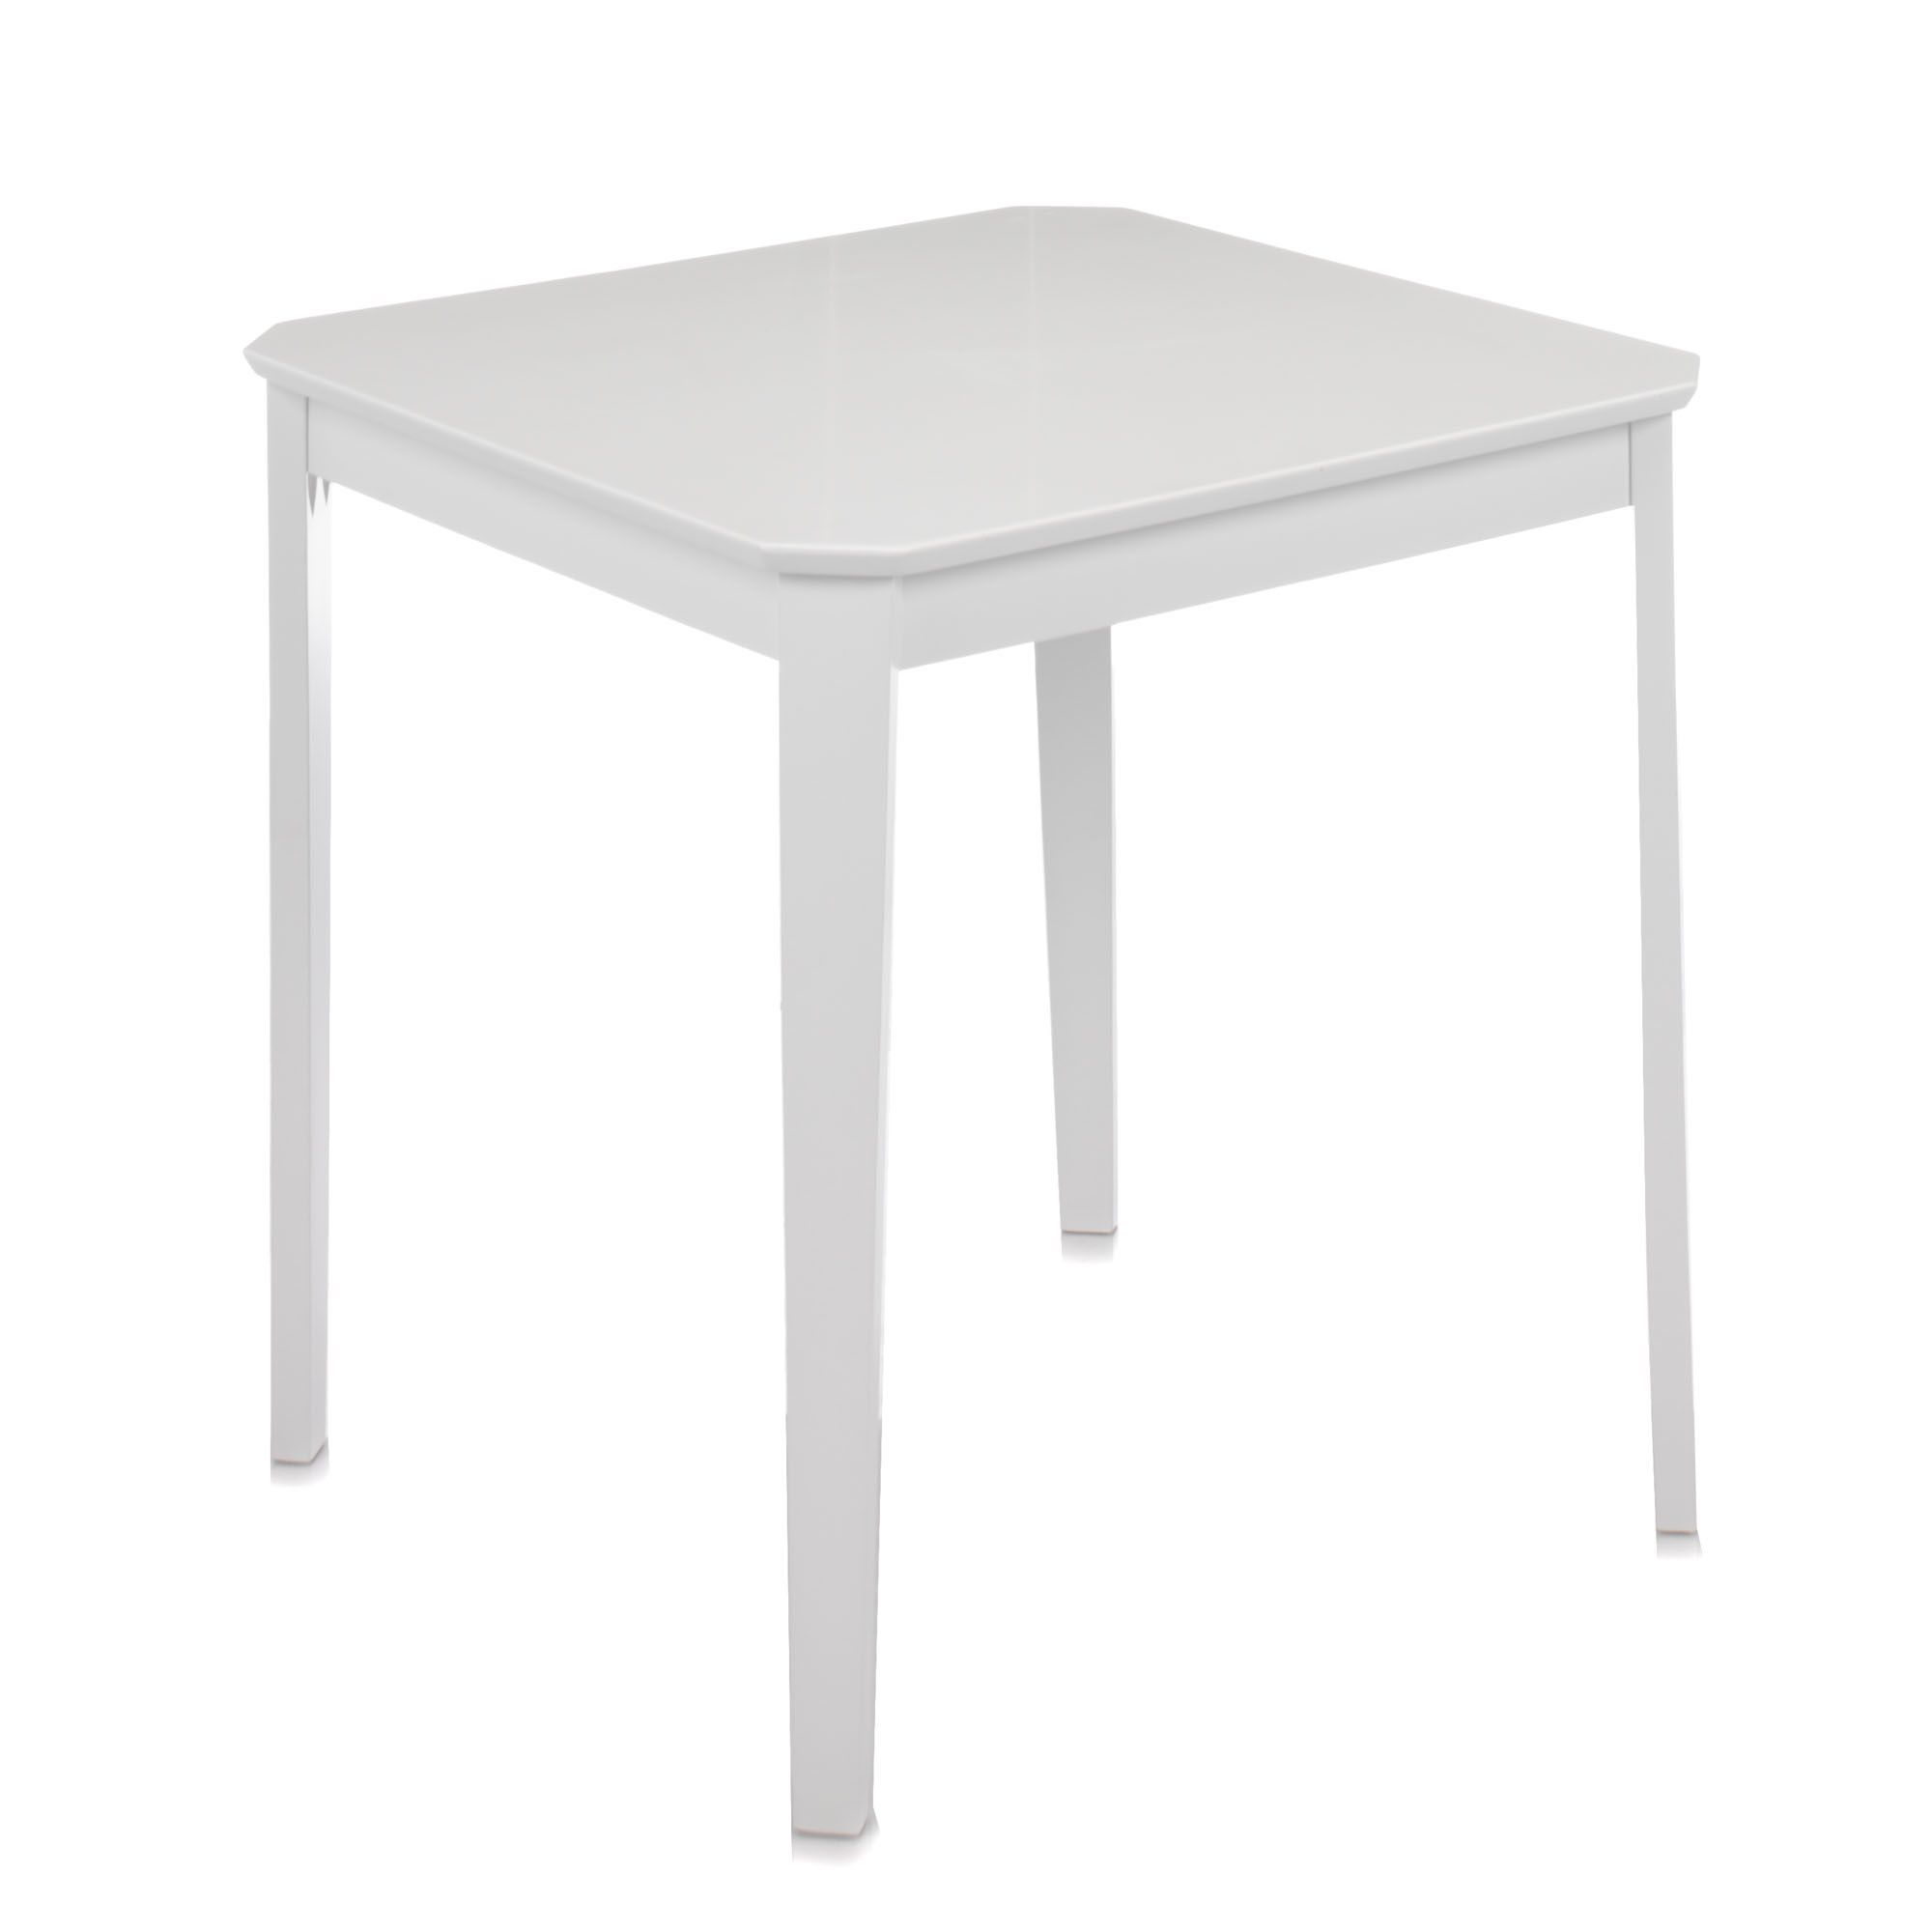 e149a1494809b1e15378ccb2bab88f0d Meilleur De De Set De Table Alinea